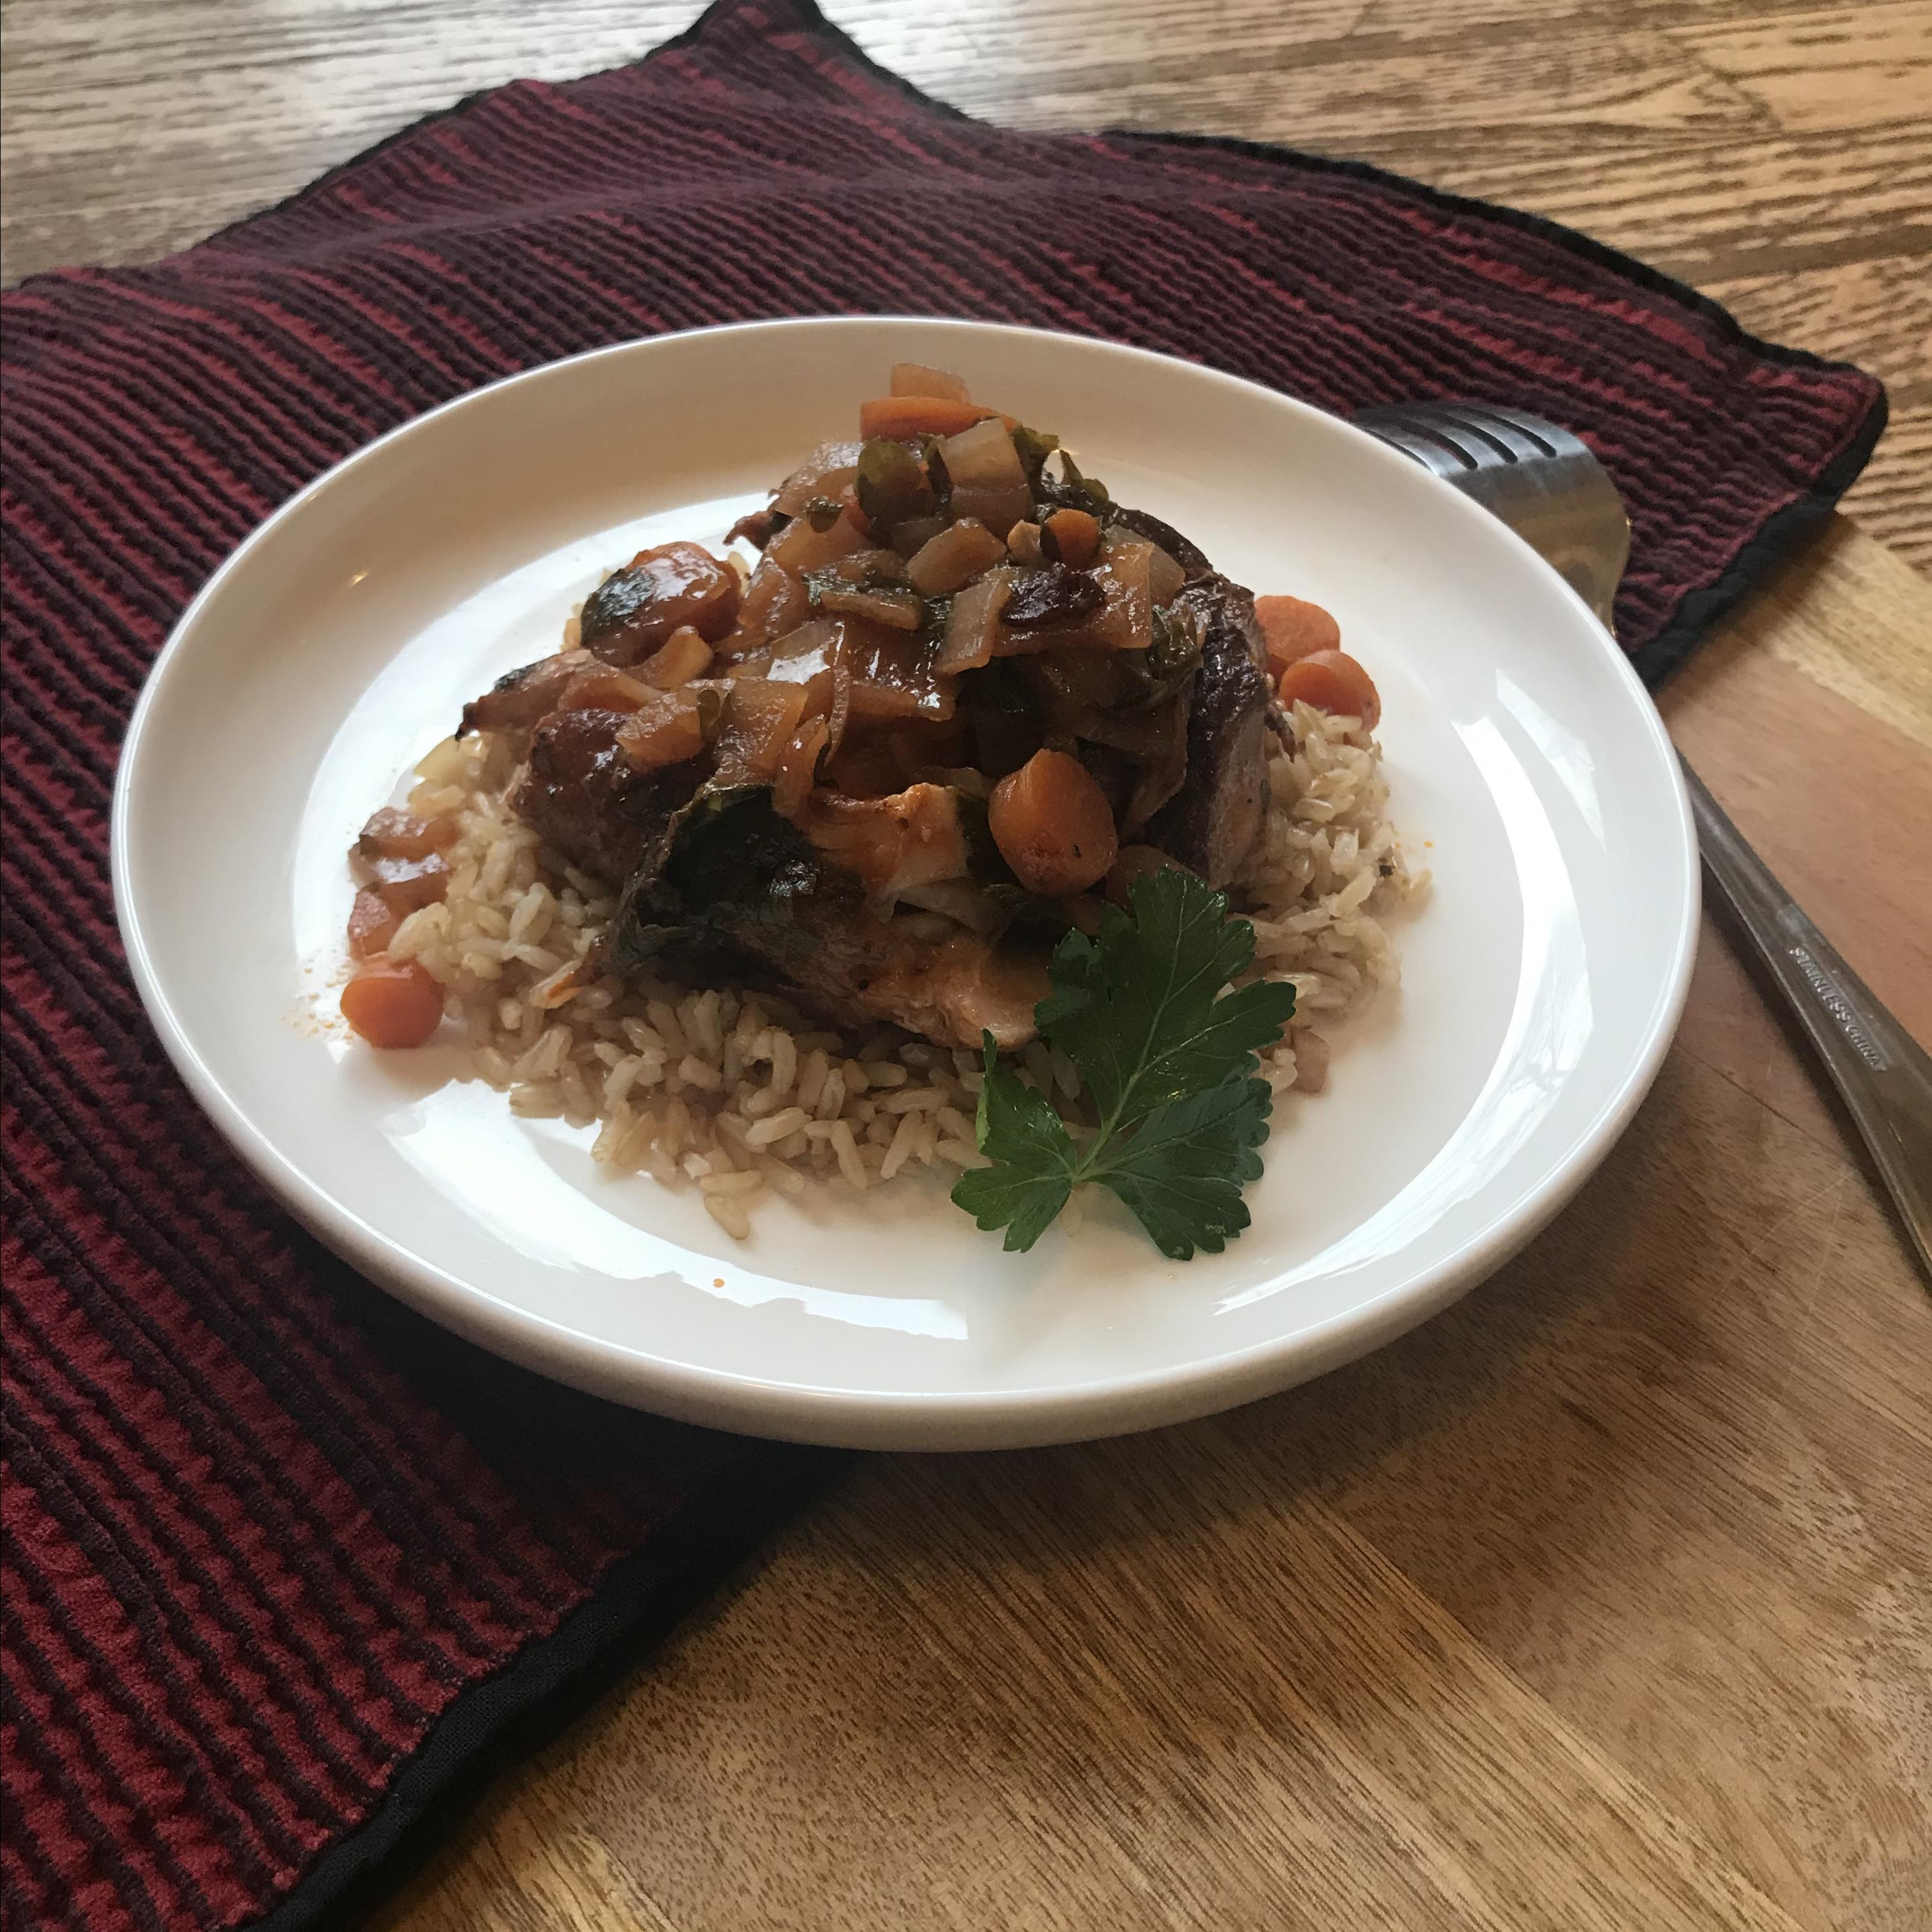 """This is a tasty, quick prep meal of braised pork that can be used in versatile ways,"" says Alison Willette. ""It can be assembled quickly in the morning or the night before for a slow cooker meal. You can add potatoes or other veggies for a stew, or reserve the liquid to pour over rice. My kids love the leftover liquids turned into gravy for mashed potatoes or mashed cauliflower."""